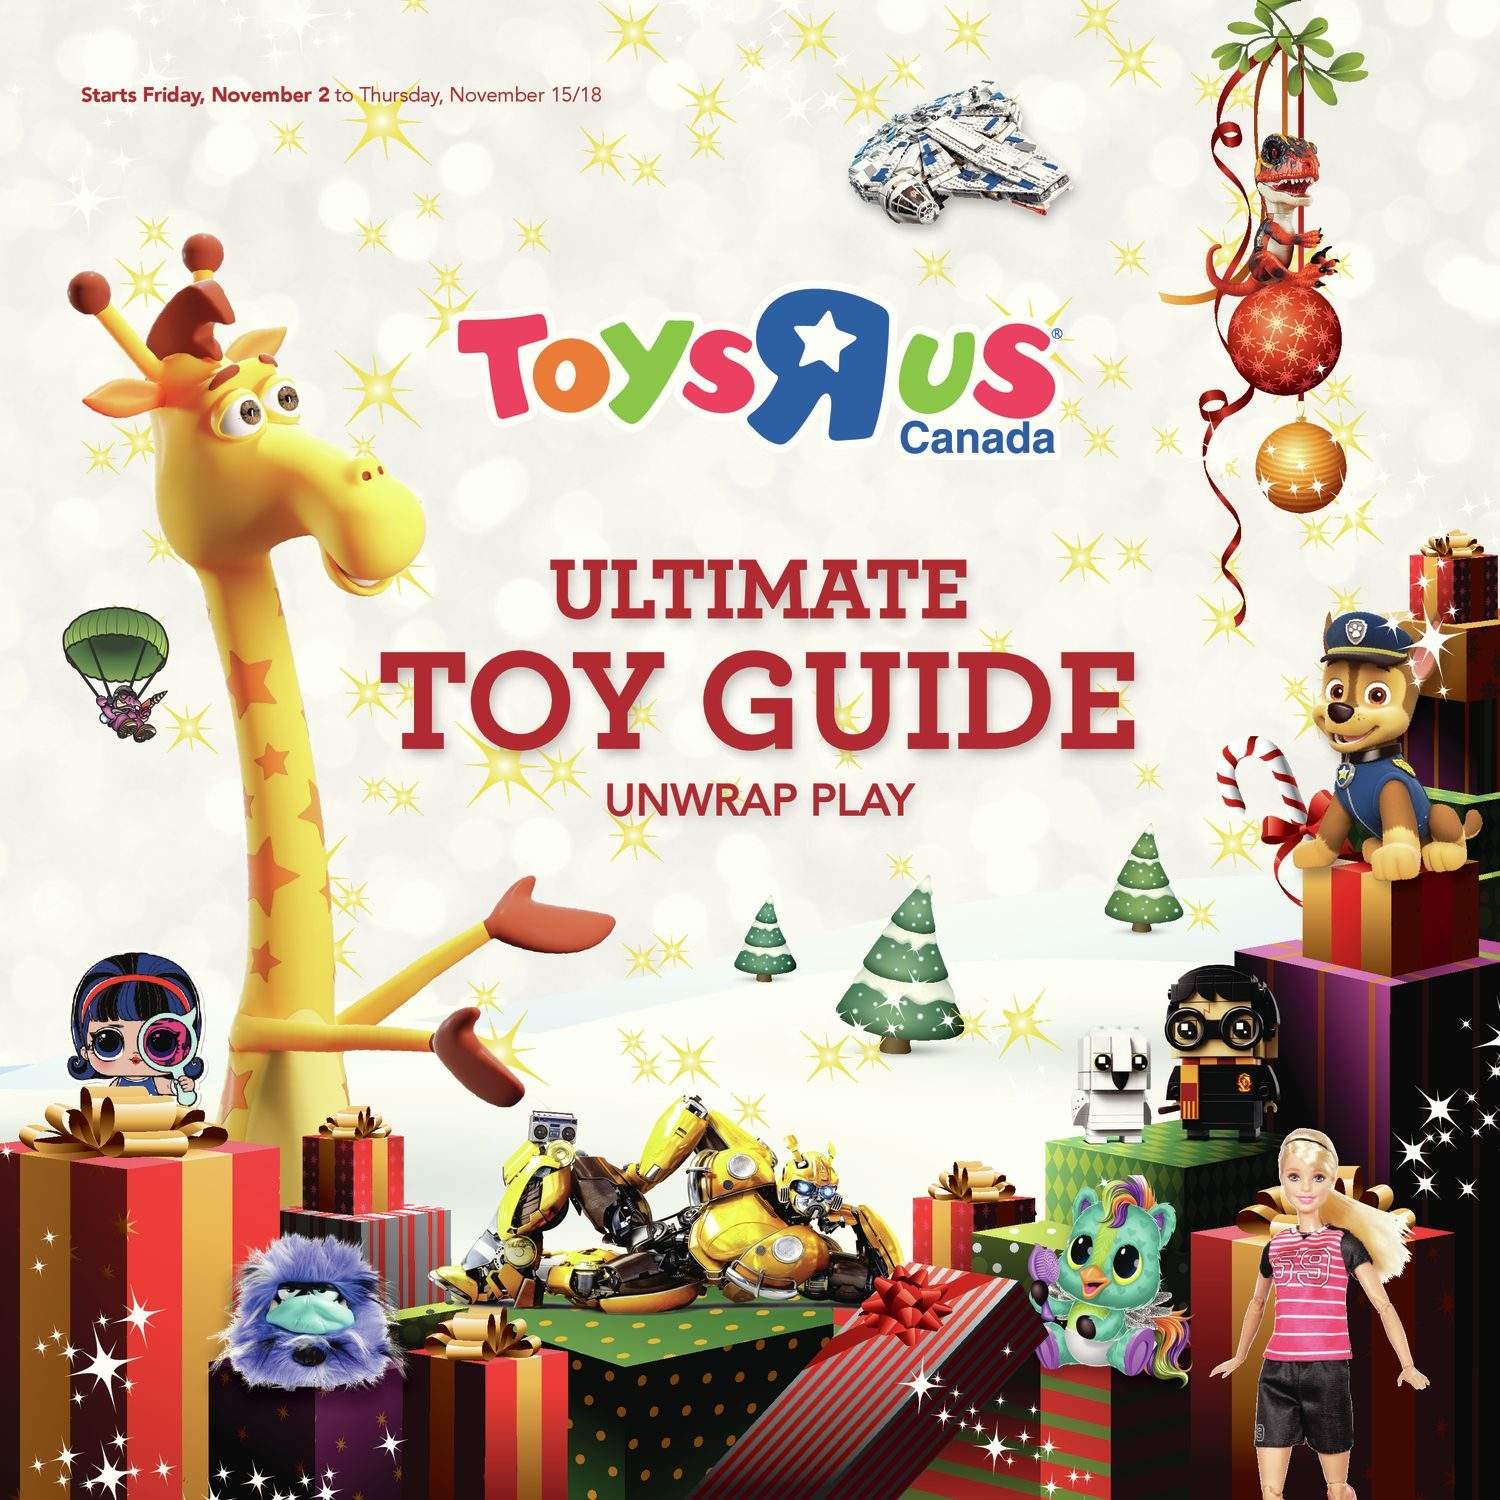 Leapfrog A Tad Of Christmas Cheer.Toys R Us Weekly Flyer Ultimate Toy Guide 2018 Nov 2